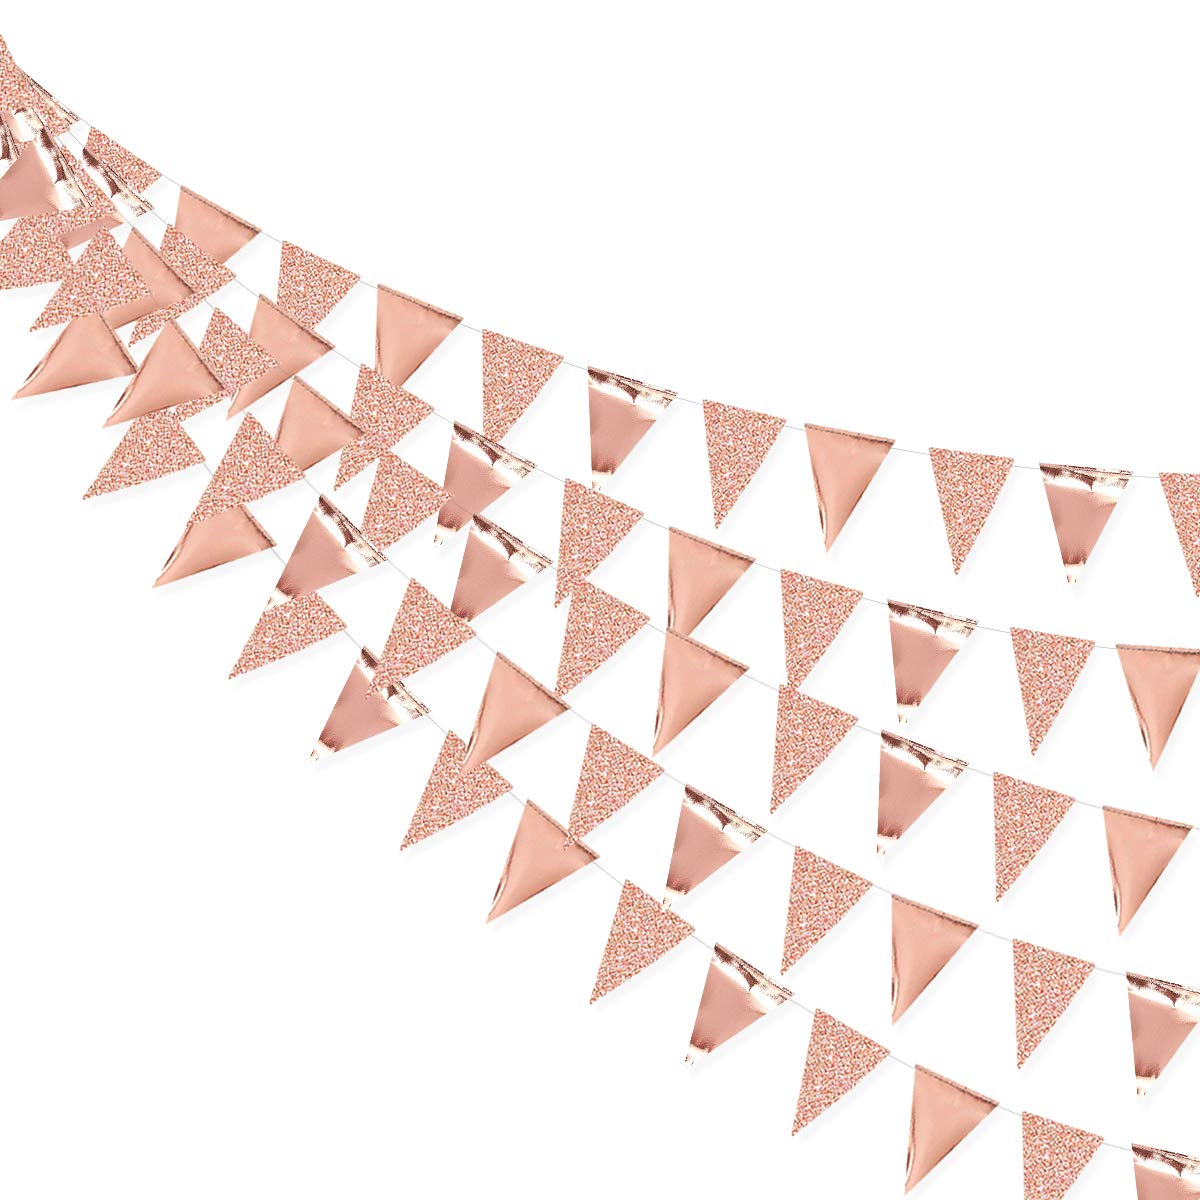 30 Ft Rose Gold Double Sided Glitter Metallic Paper Triangle Flag Pennant Bunting Banner for Wedding Birthday Holiday Festivals Anniversary Bridal Shower Hen Party Theme Party Decorations Supplies